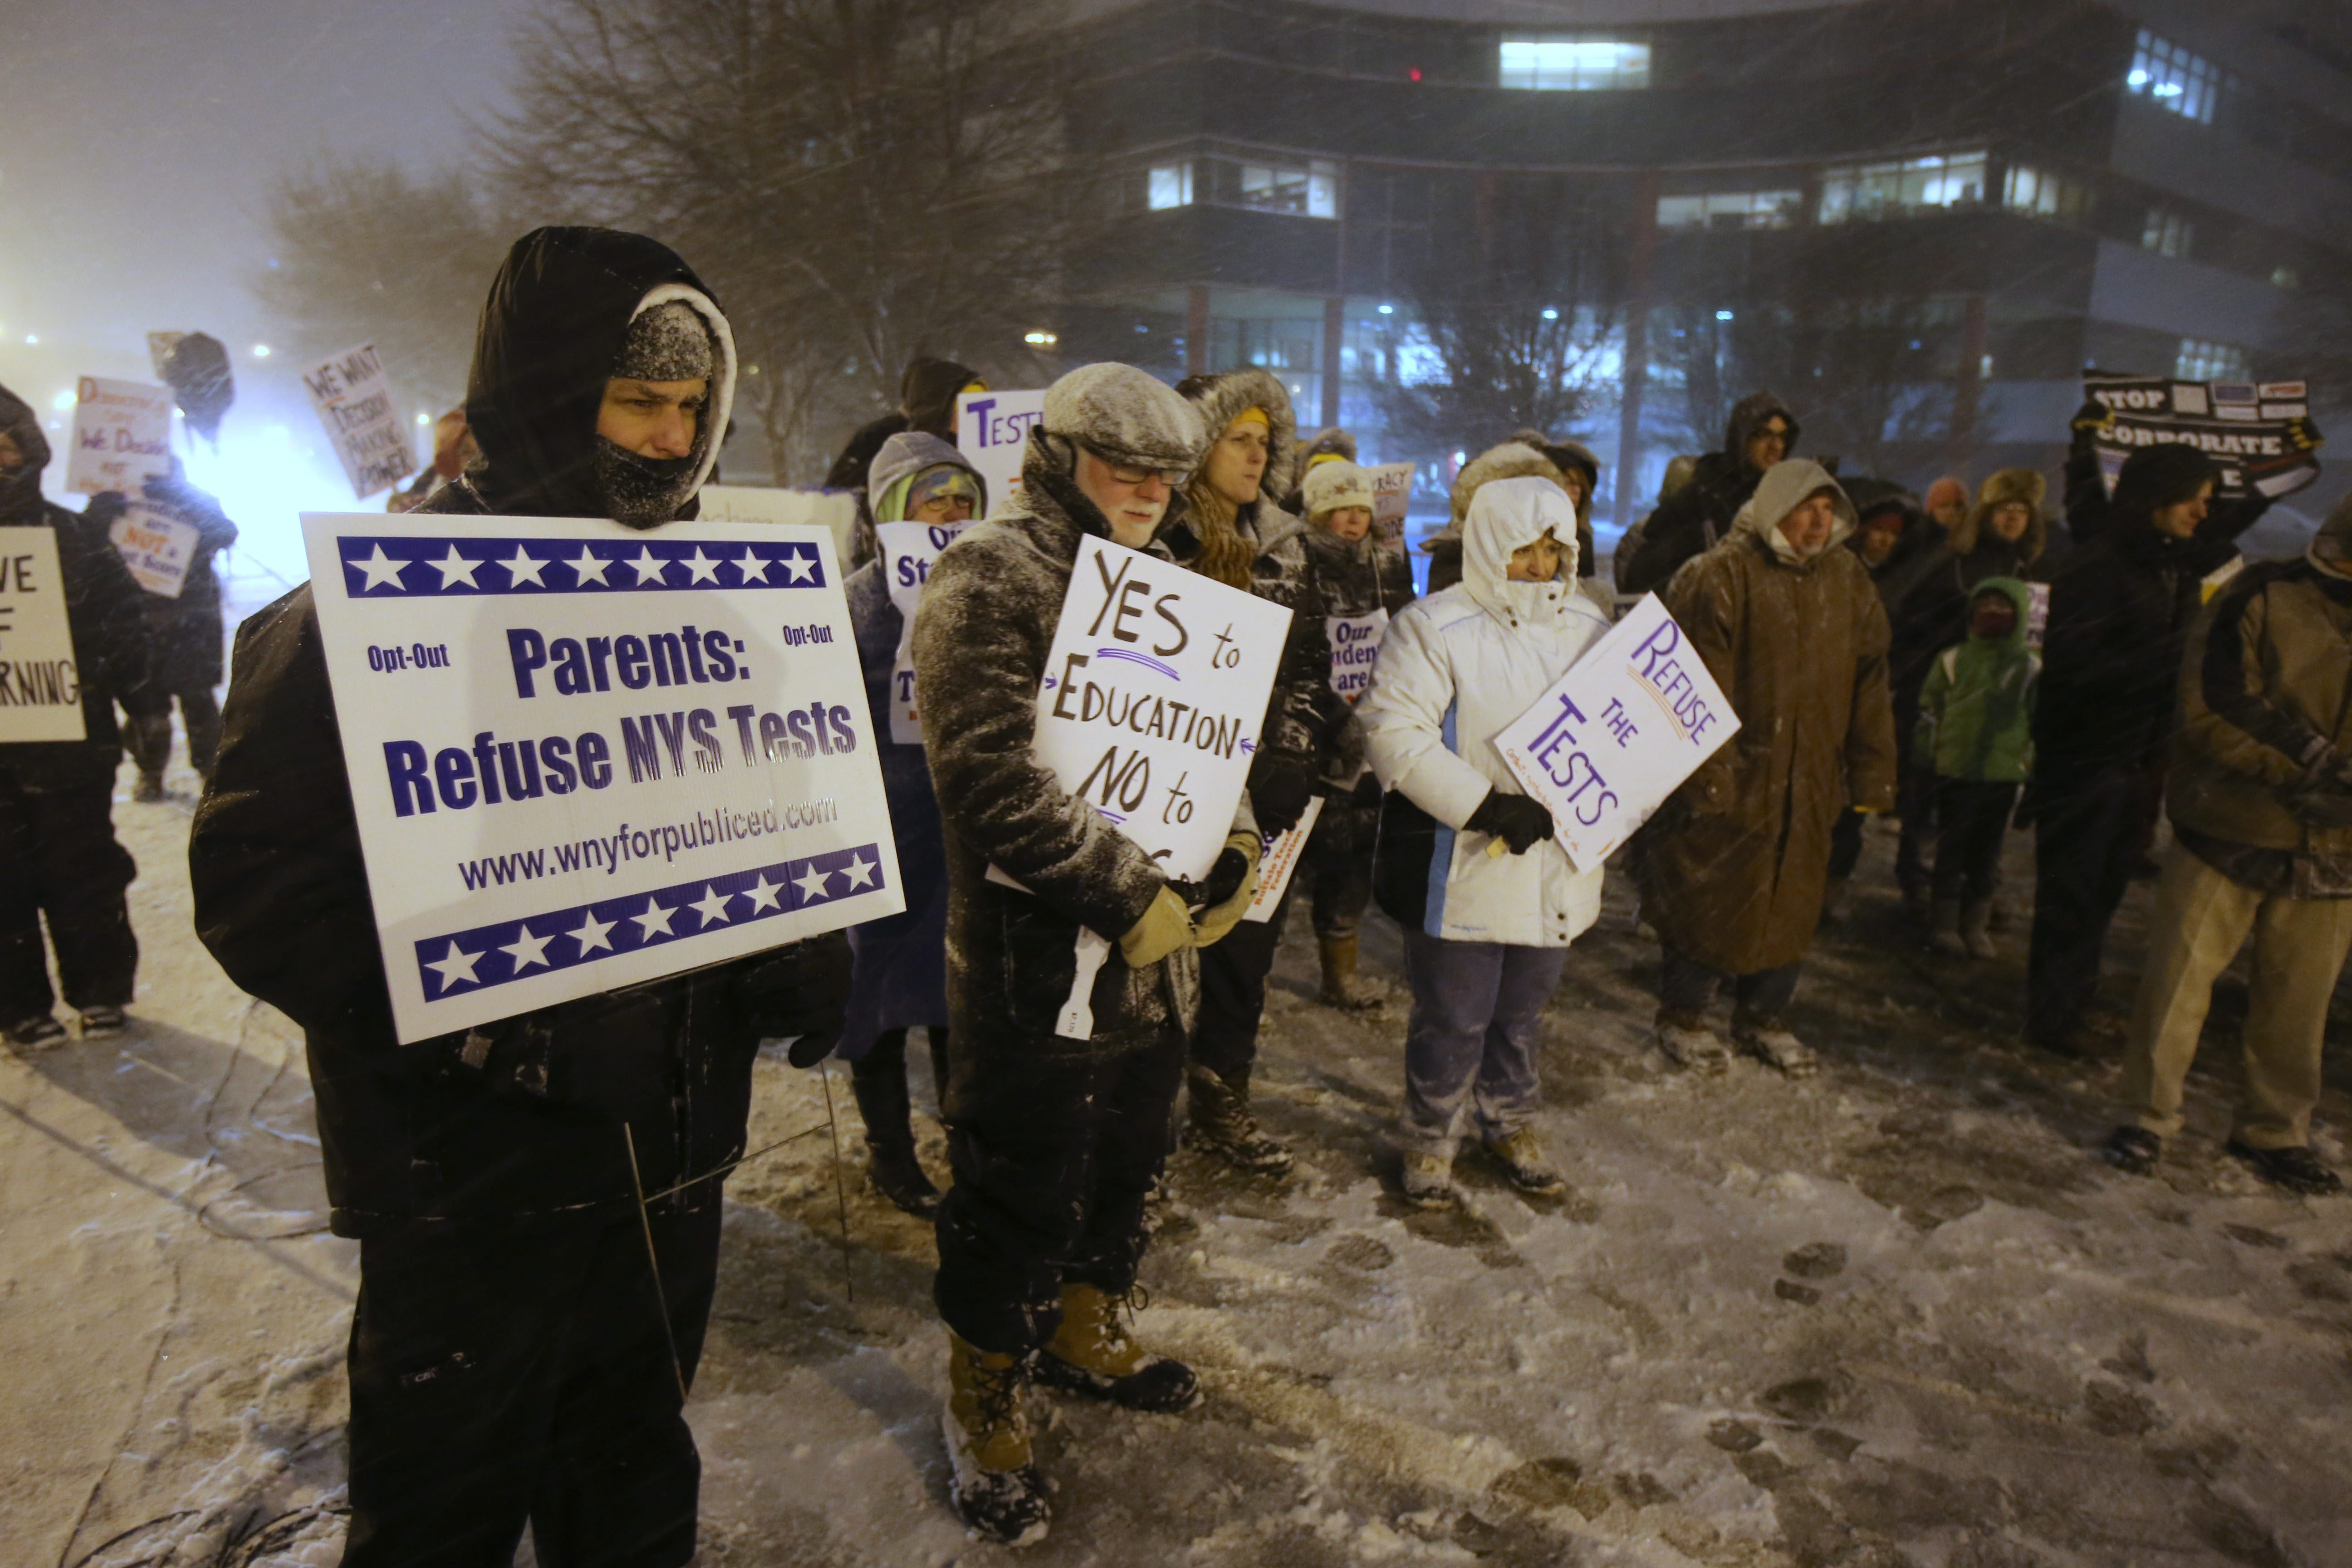 Protesting teachers and parents make their views known about state's Common Core standards and testing as they picket outside WNED studios during forum featuring Education Commissioner John B. King Jr.